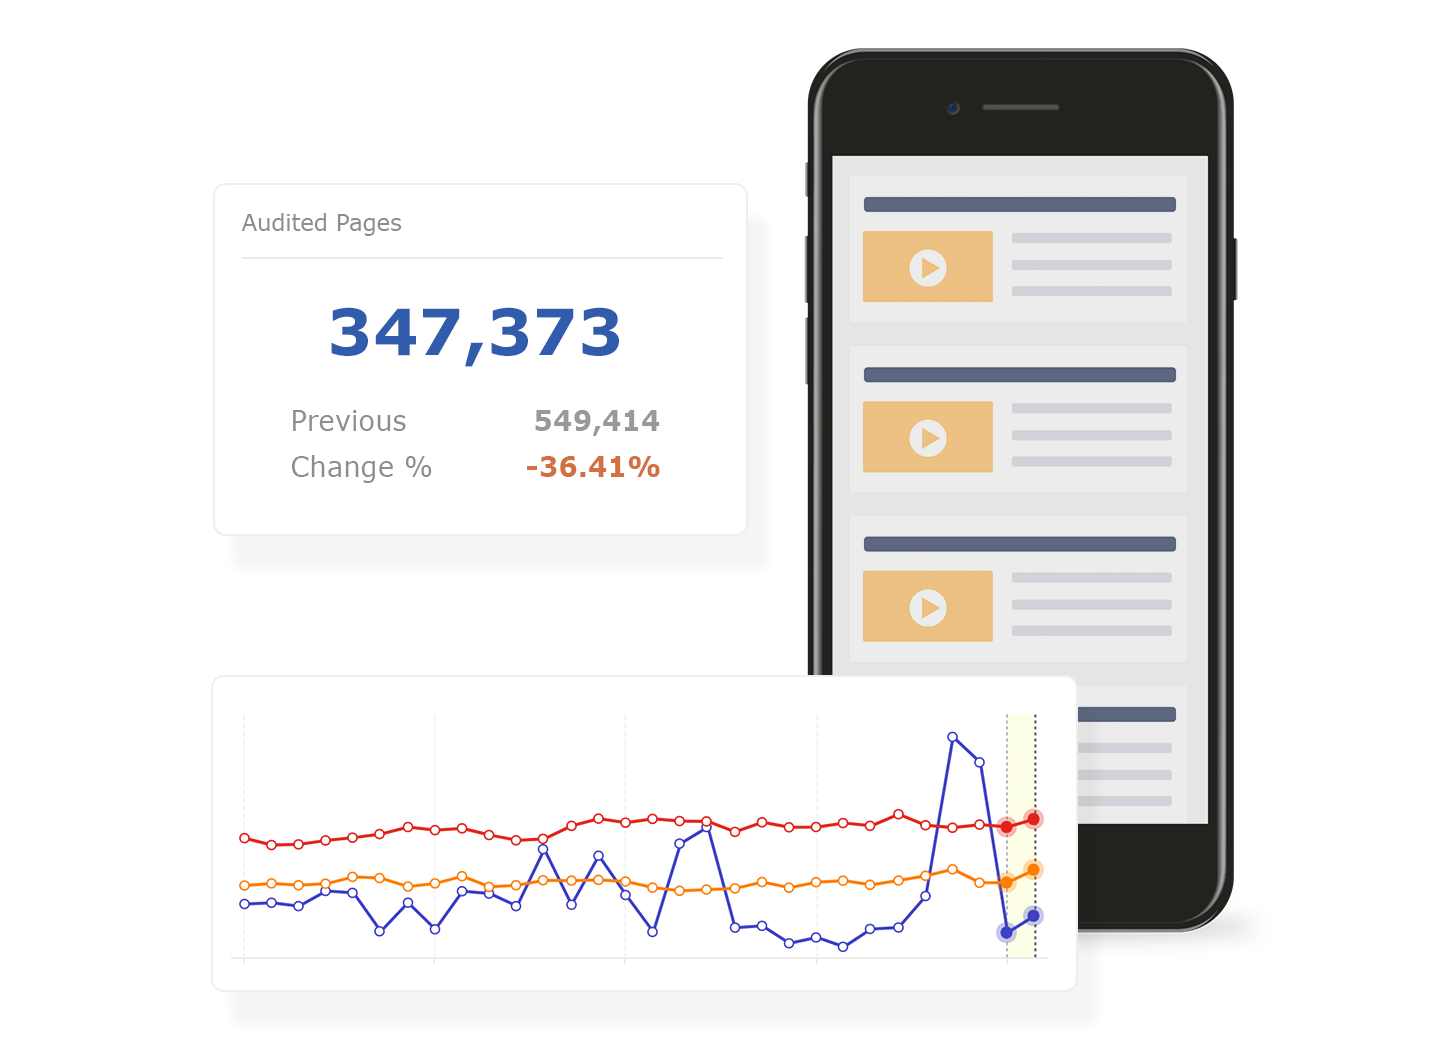 Mobile SEO - Capitalize on Mobile Search Insights